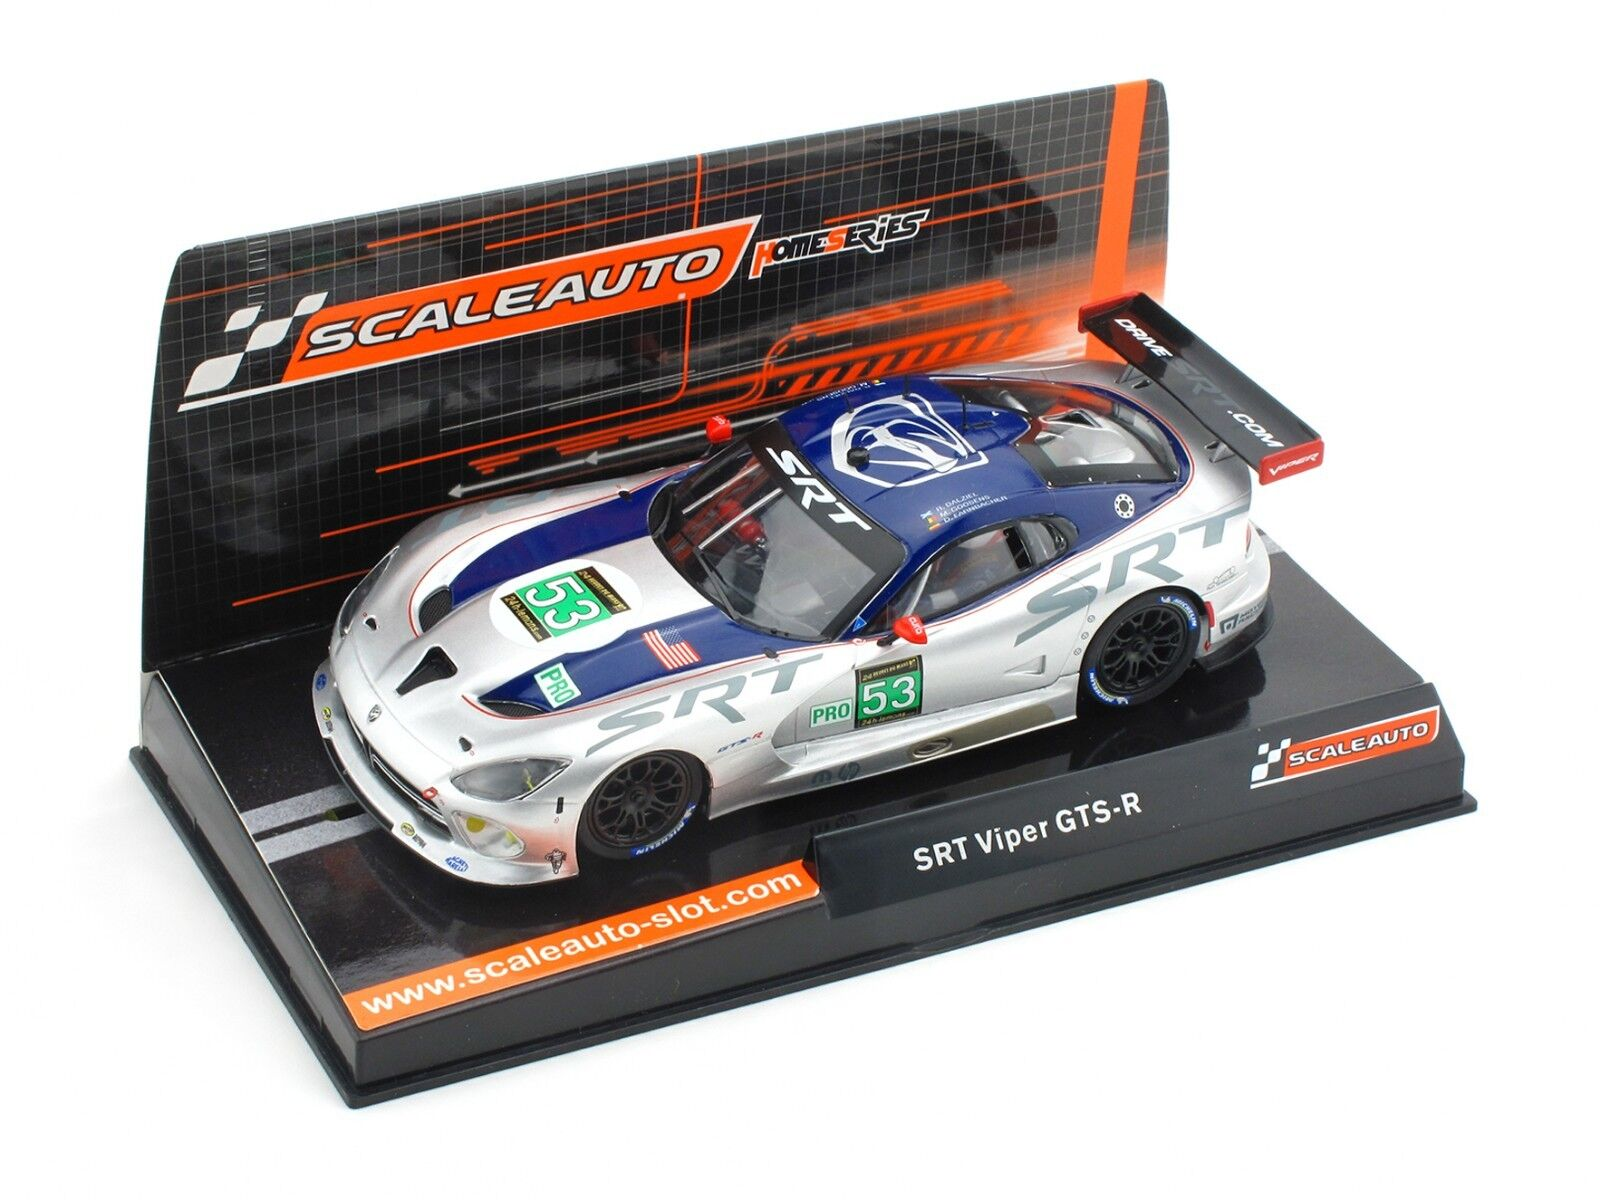 Best price  Scaleauto SRT Viper GTS-R 24h Le Mans 2013 Ref. SC-6037 Slot Car